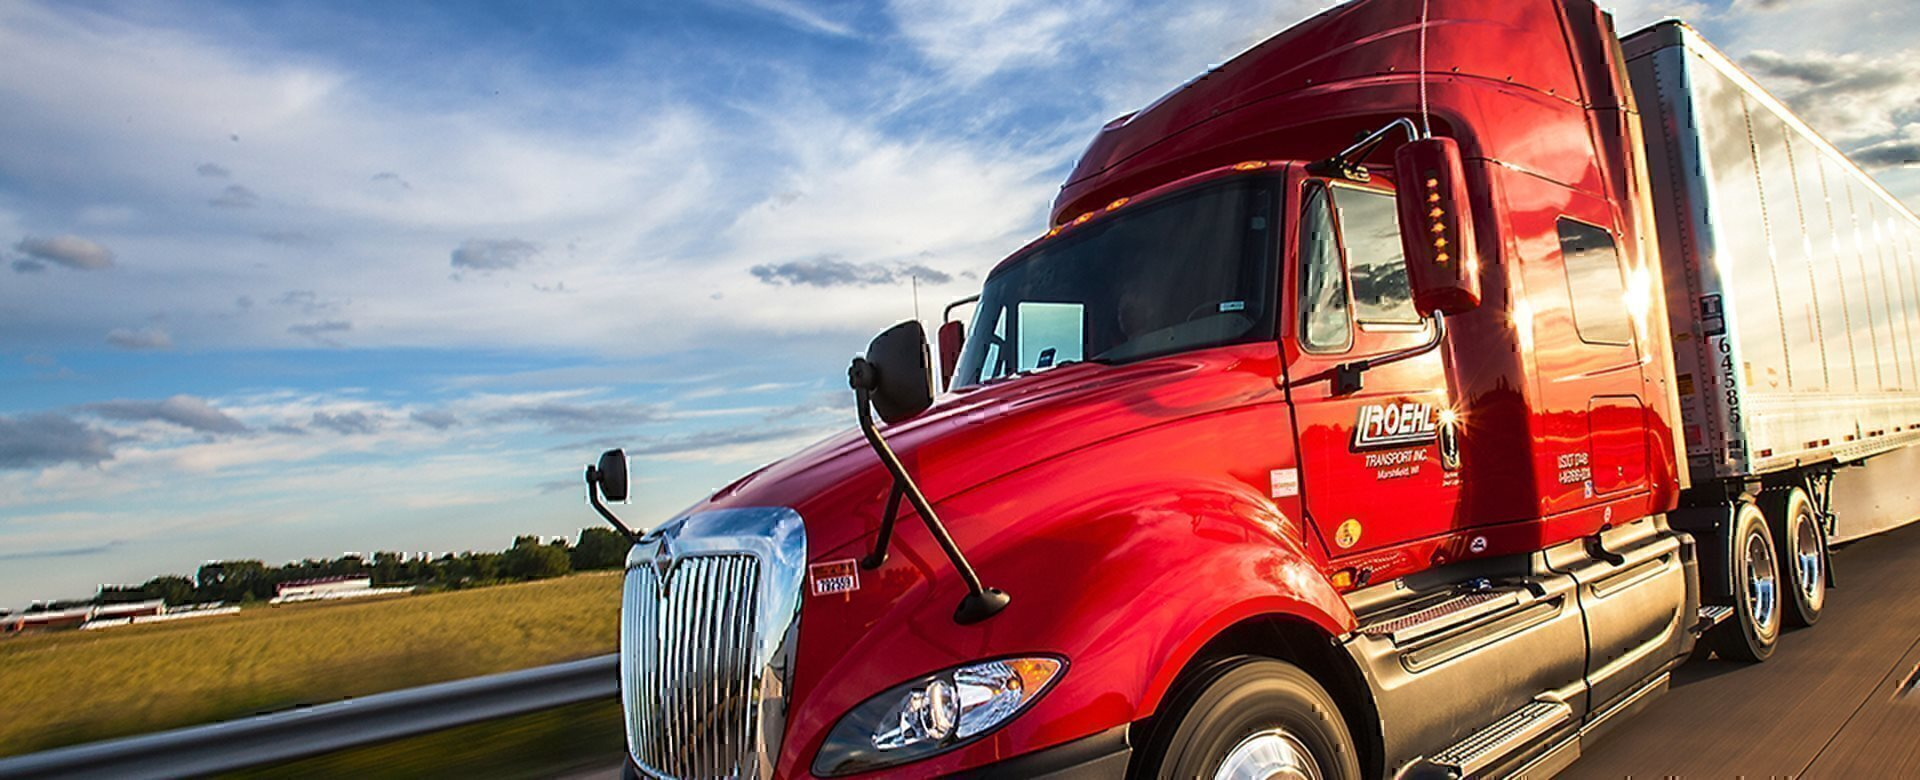 Becoming a Truck Driver: Getting Your CDL